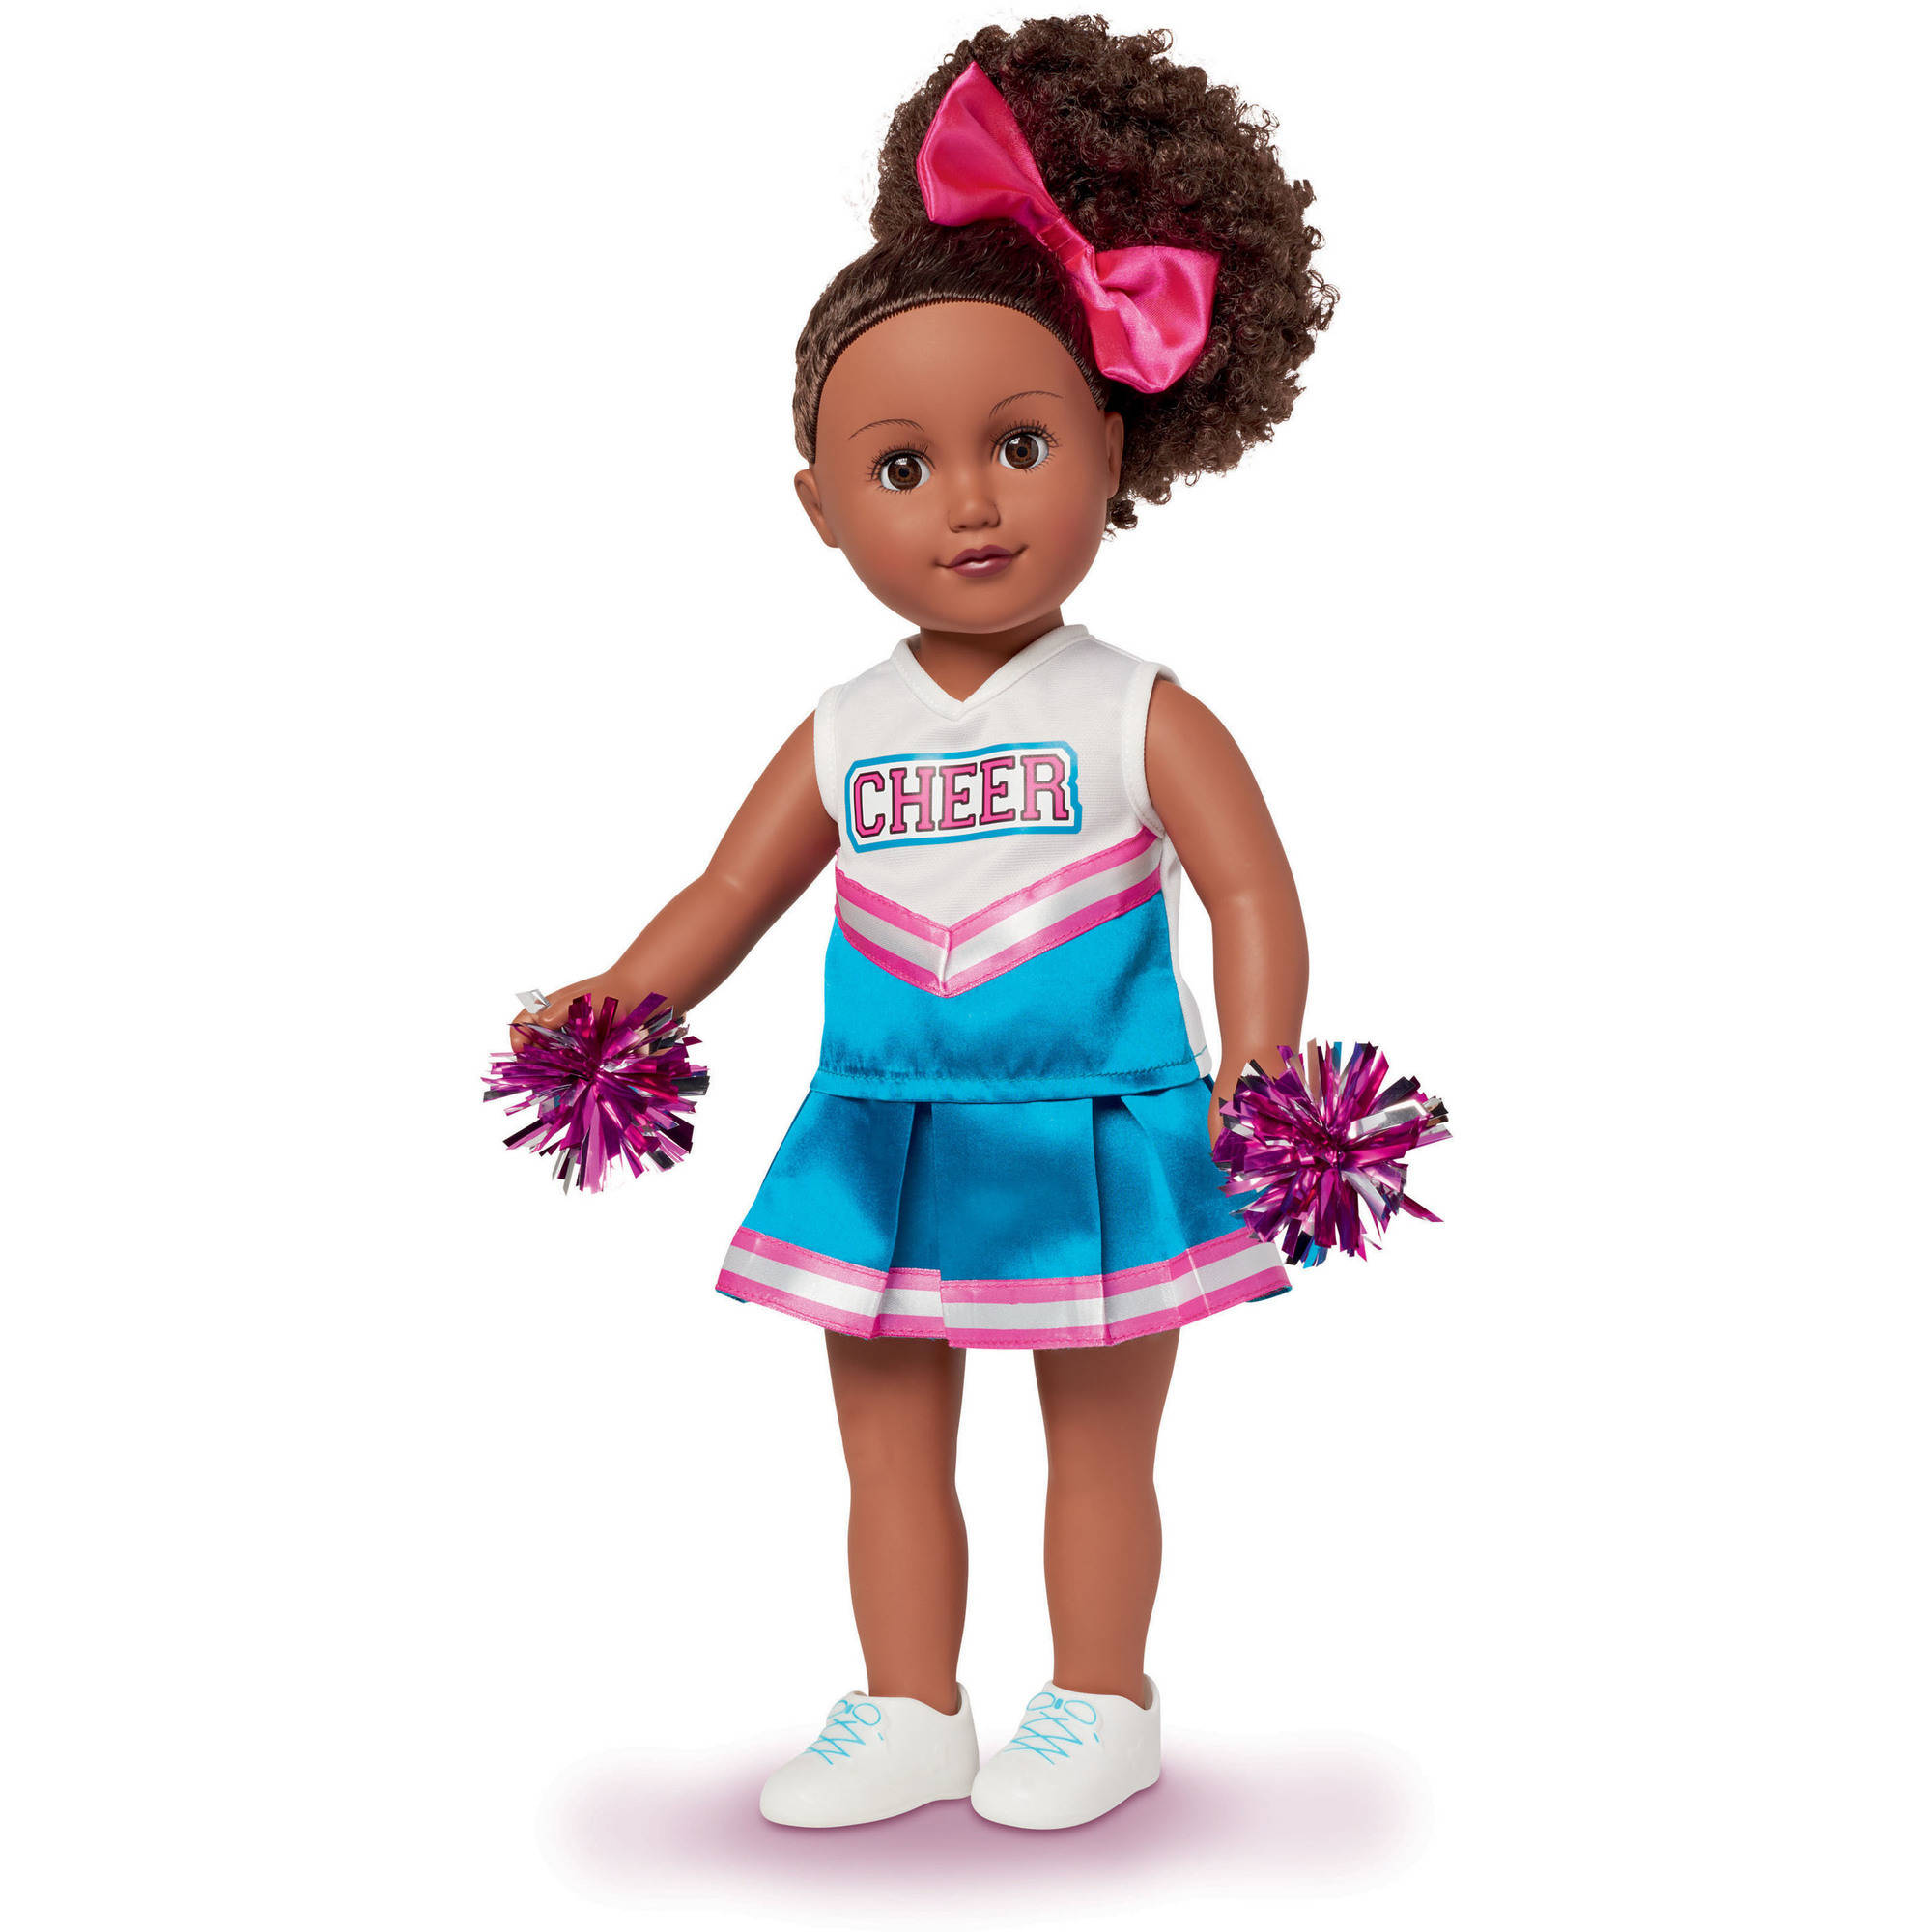 sc 1 st  Walmart & My Life As Cheerleader Doll 18